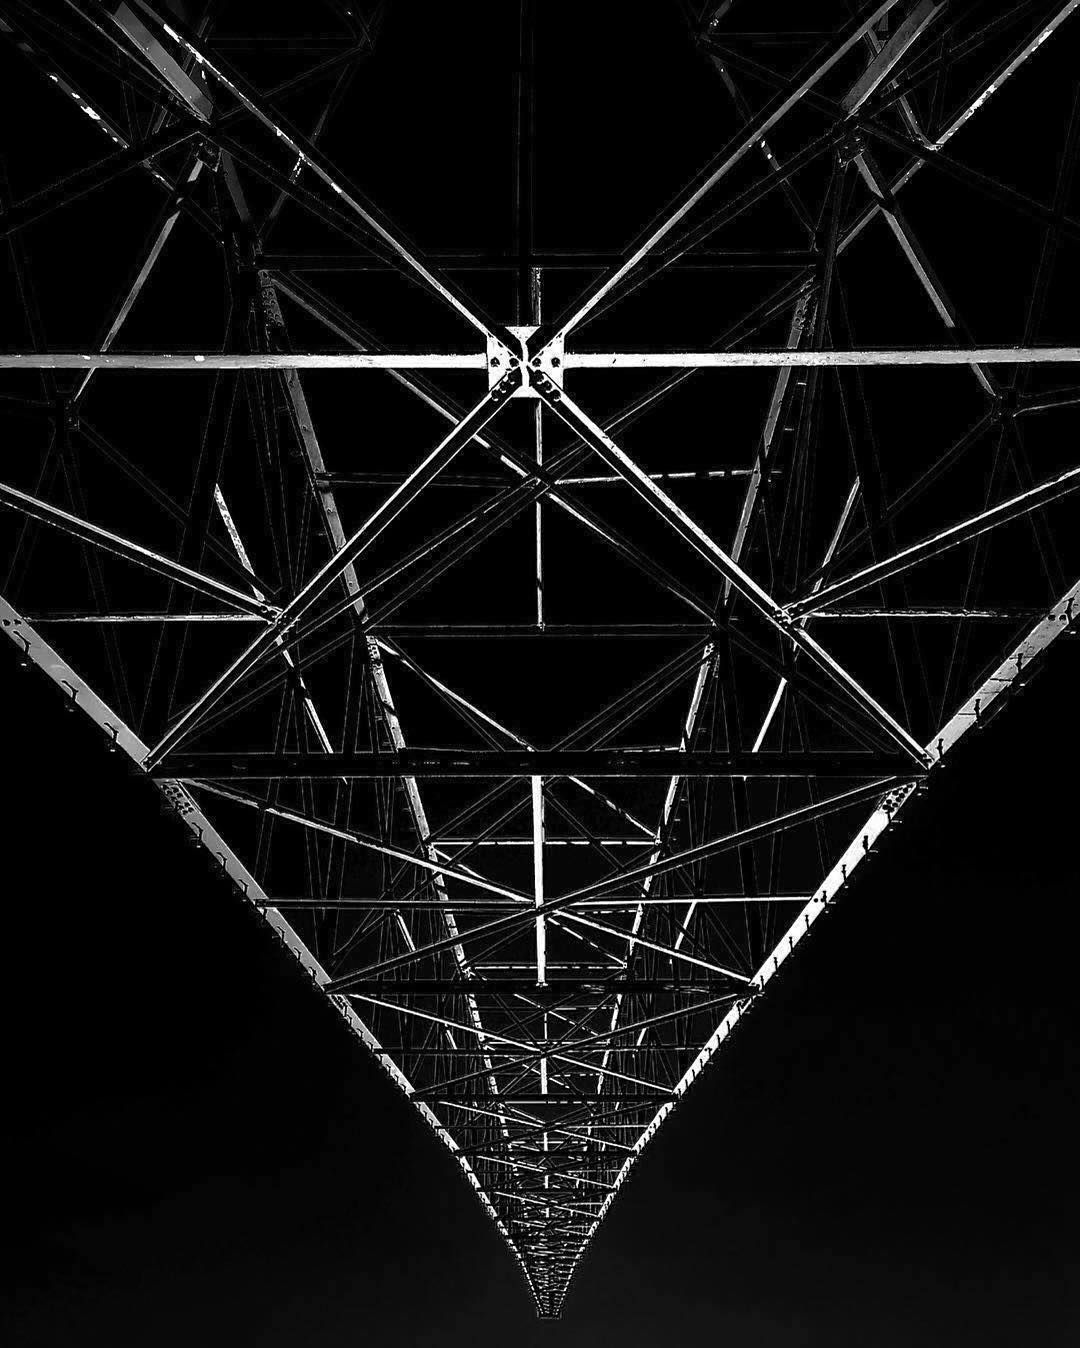 INTERSTELLAR SPACE STATION  Featured Artist Kendra @kendraclarkphotography Thank You For Sharing Your Amazing Work  FOLLOW @dxfspace2001  TAG #dxfspace2001 For A Chance To Be Featured  #arquitecturamx #monochromemavens #ptk_architecture #graphic_art_bnw  #structures_greatshots #lookingup_architecture #blackvisionprojects #icu_architecture #sky_high_architecture #skyscraping_architecture #rustlord_bnw #rustlord_archdesign #art_chitecture_ #superstarz_bw #awesomebnw #architecture_greatshots…